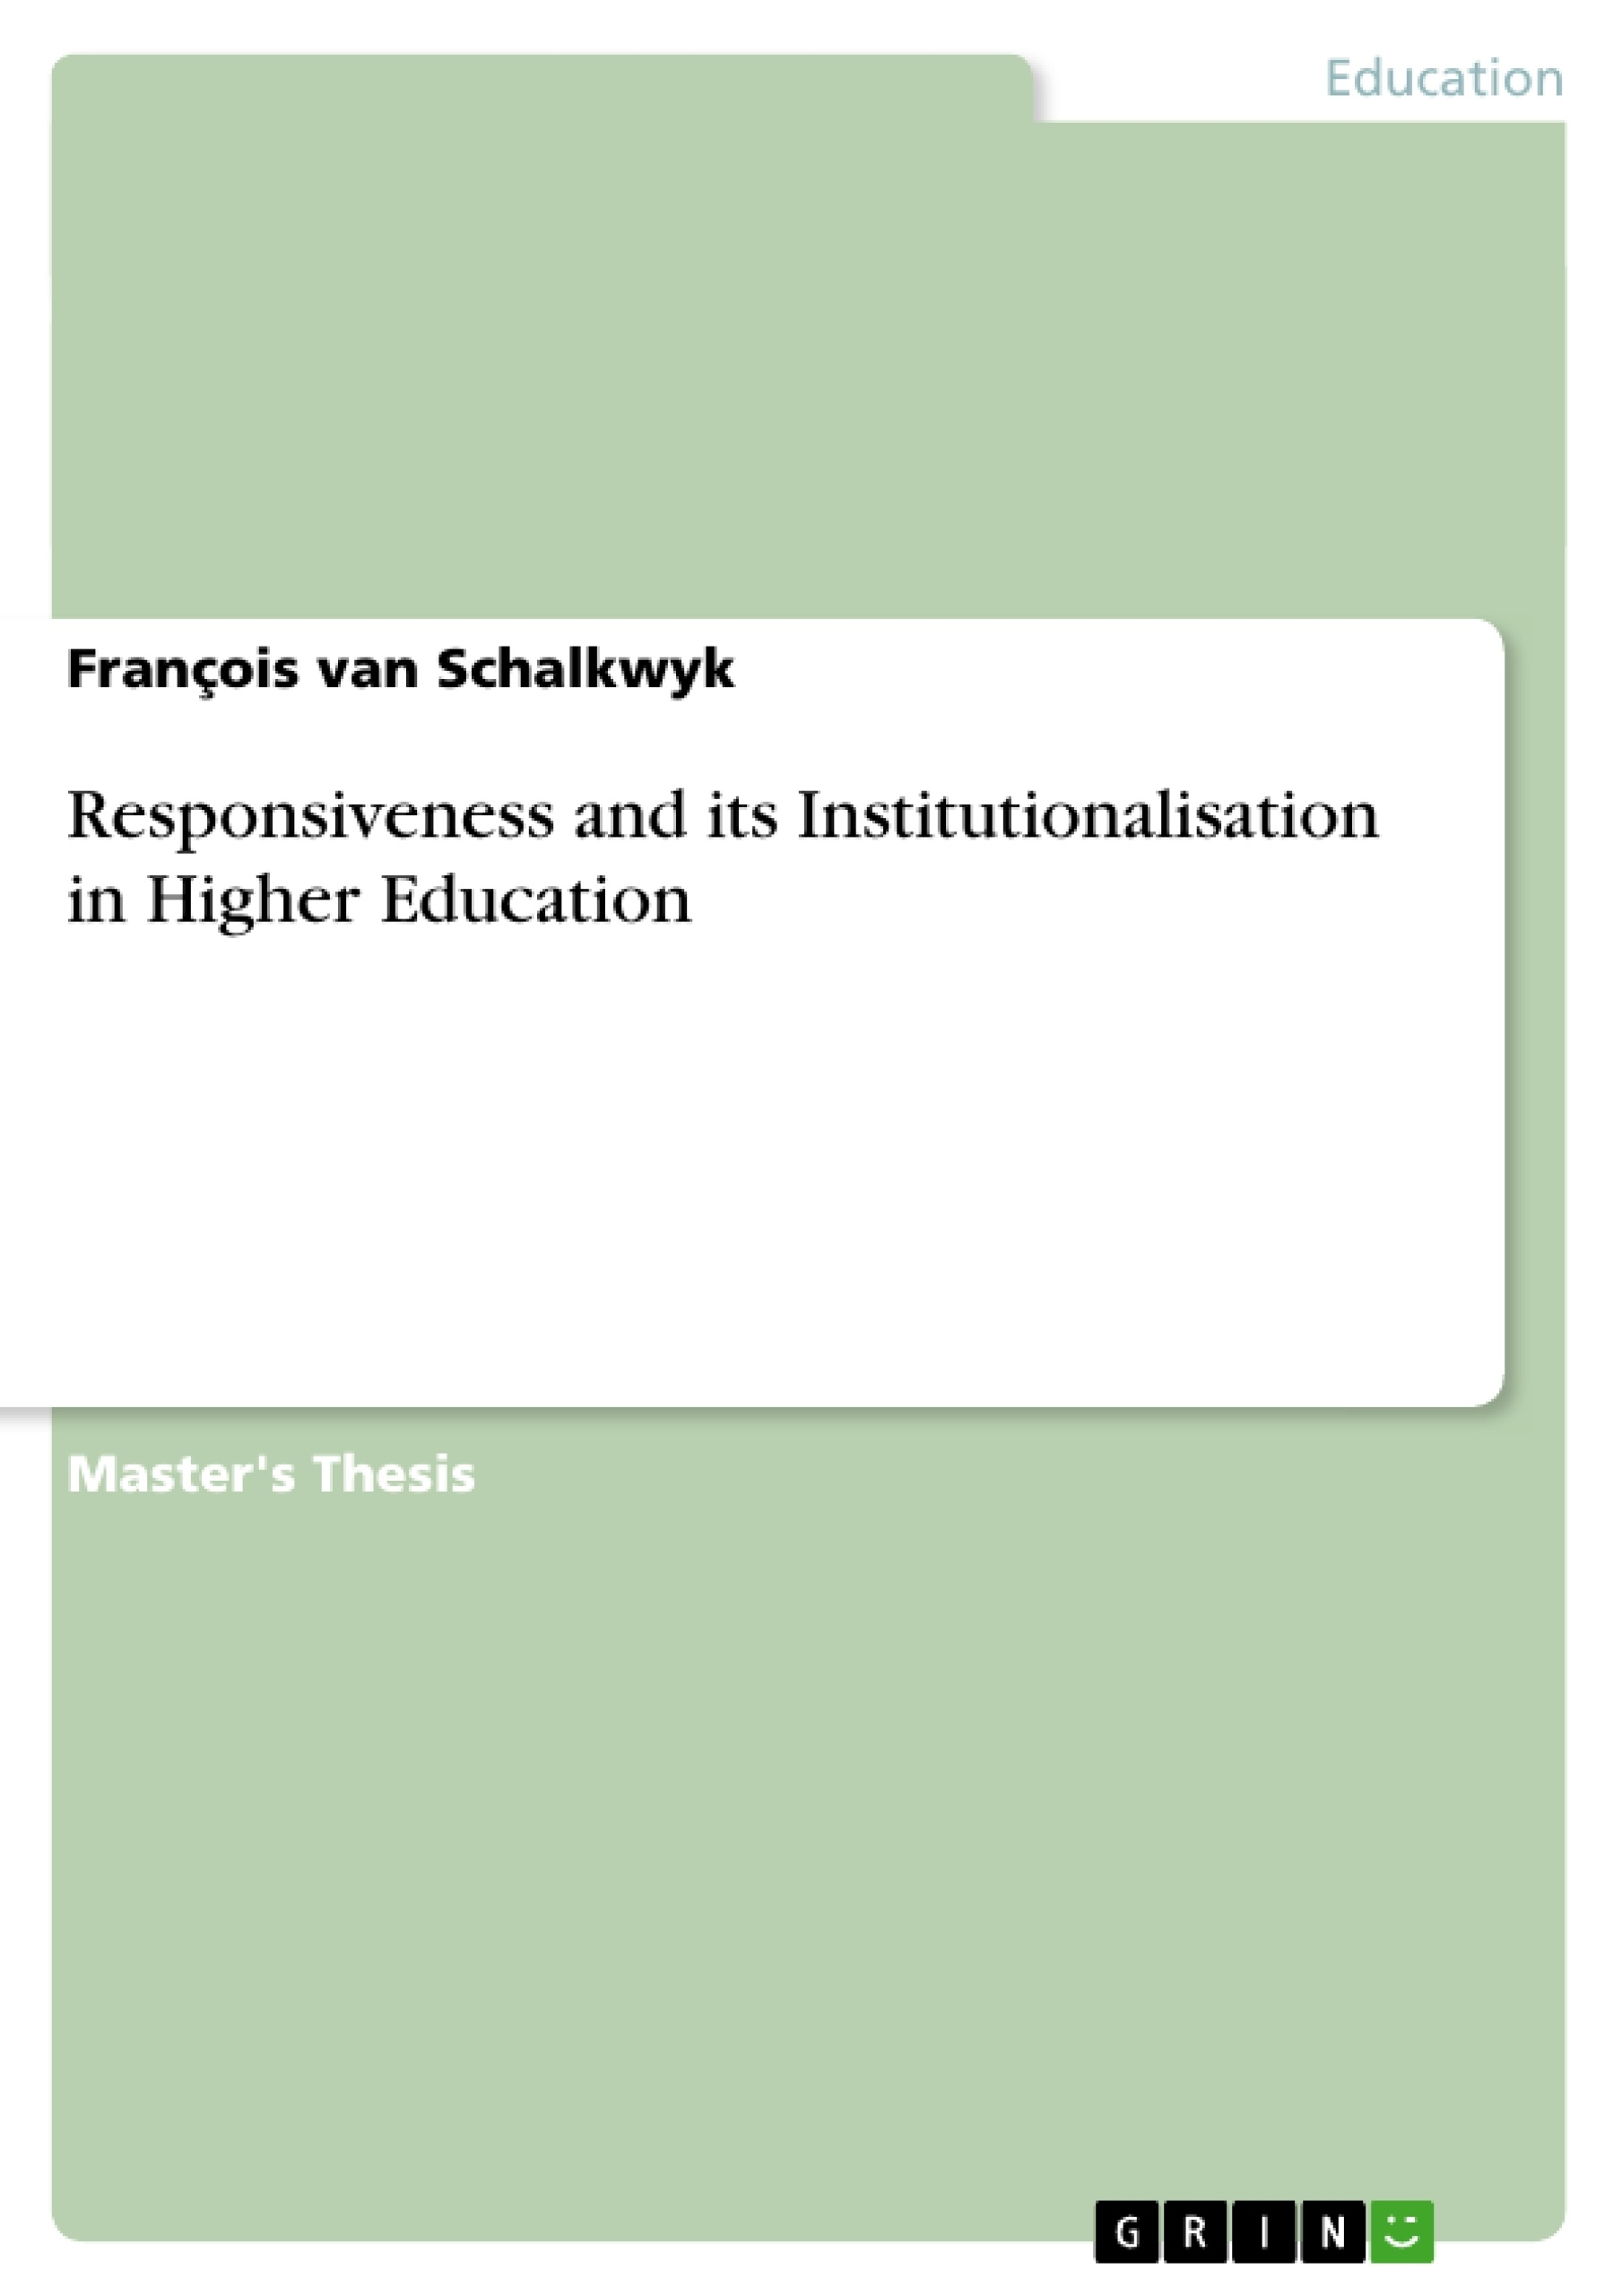 Title: Responsiveness and its Institutionalisation in Higher Education